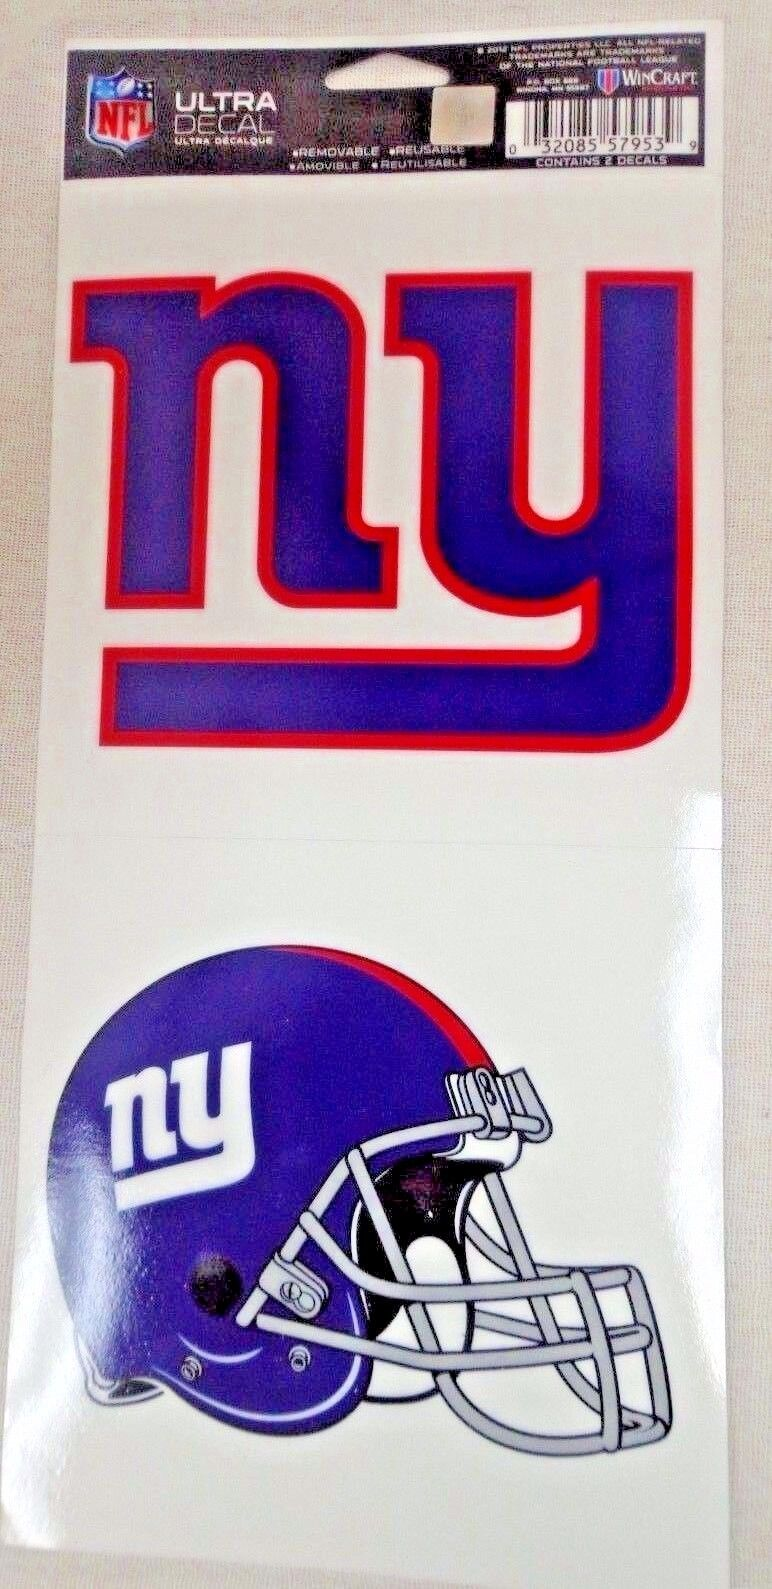 NFL Ultra Decals 2 Pack Set Removable Reusable Sticker Wincraft New York Giants